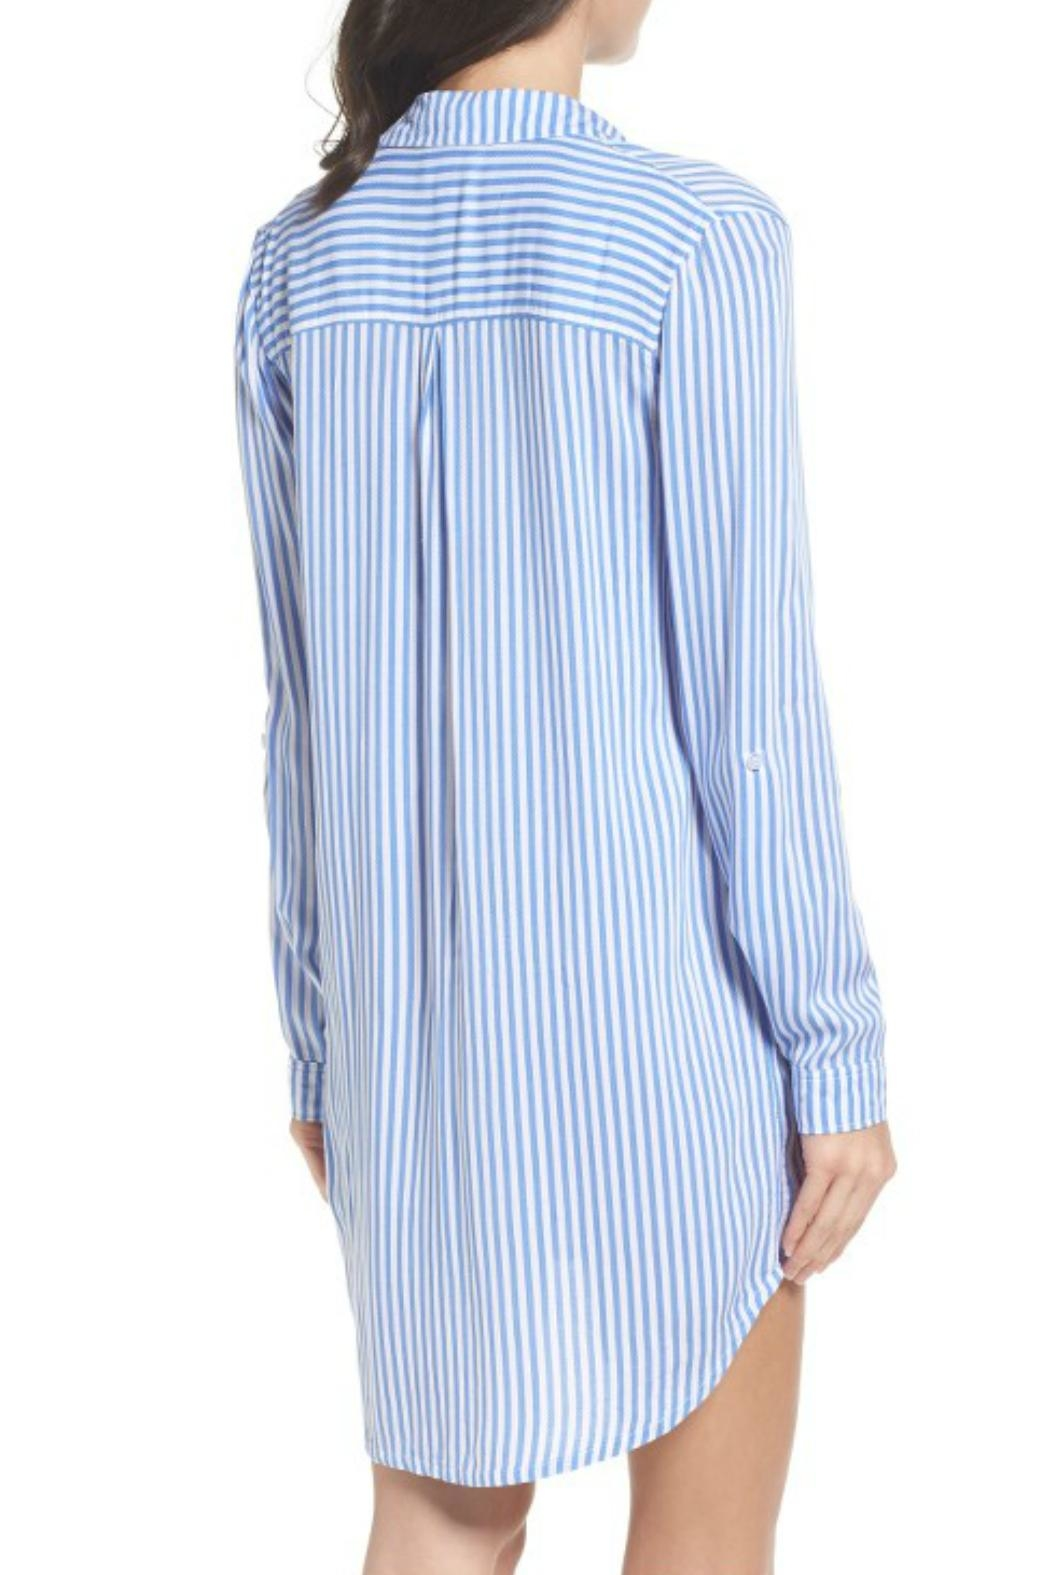 8efea5e3ee P.J. Salvage Summer Stripe Nightshirt from Idaho by Ruby Lou ...